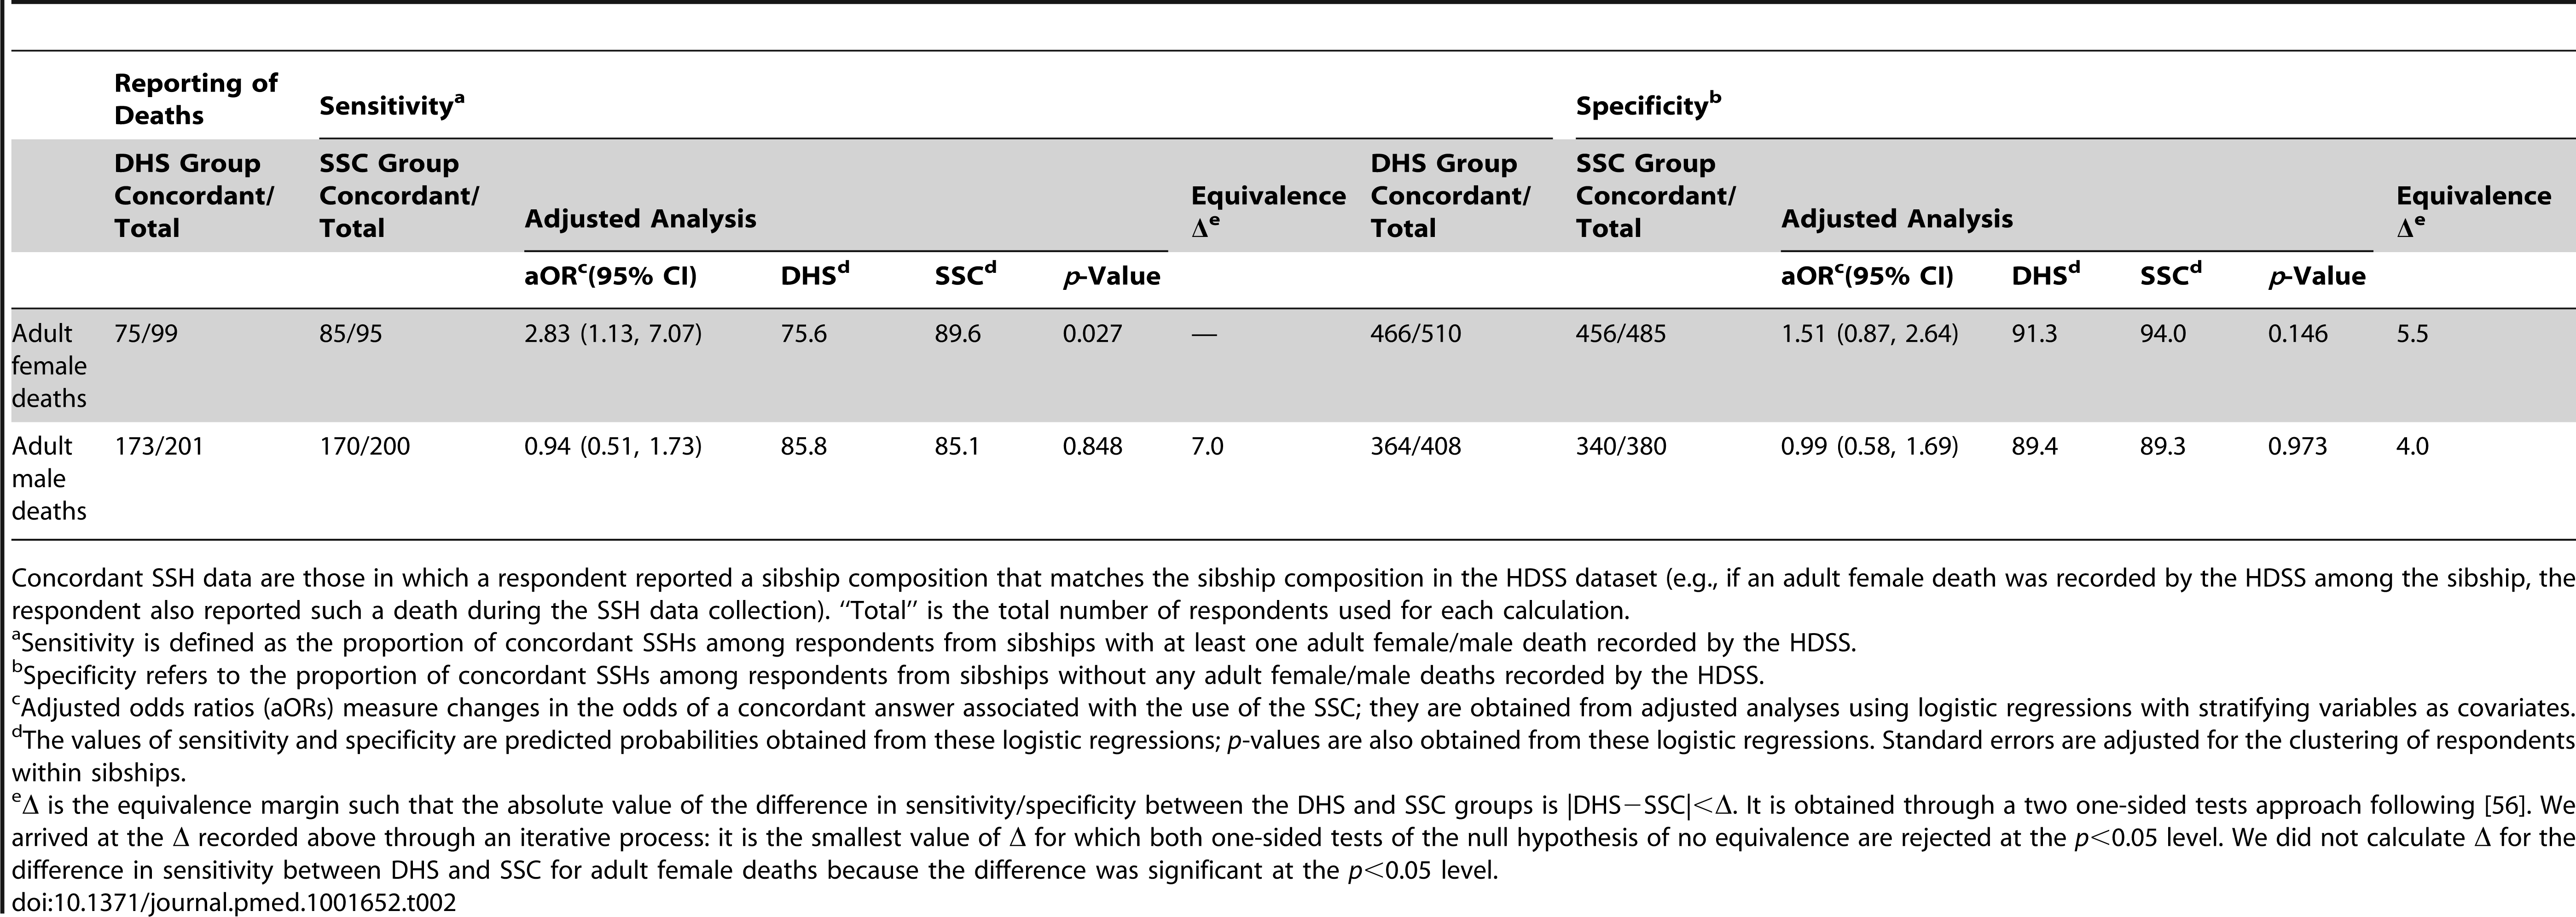 Specificity and sensitivity of SSH data, by study group.